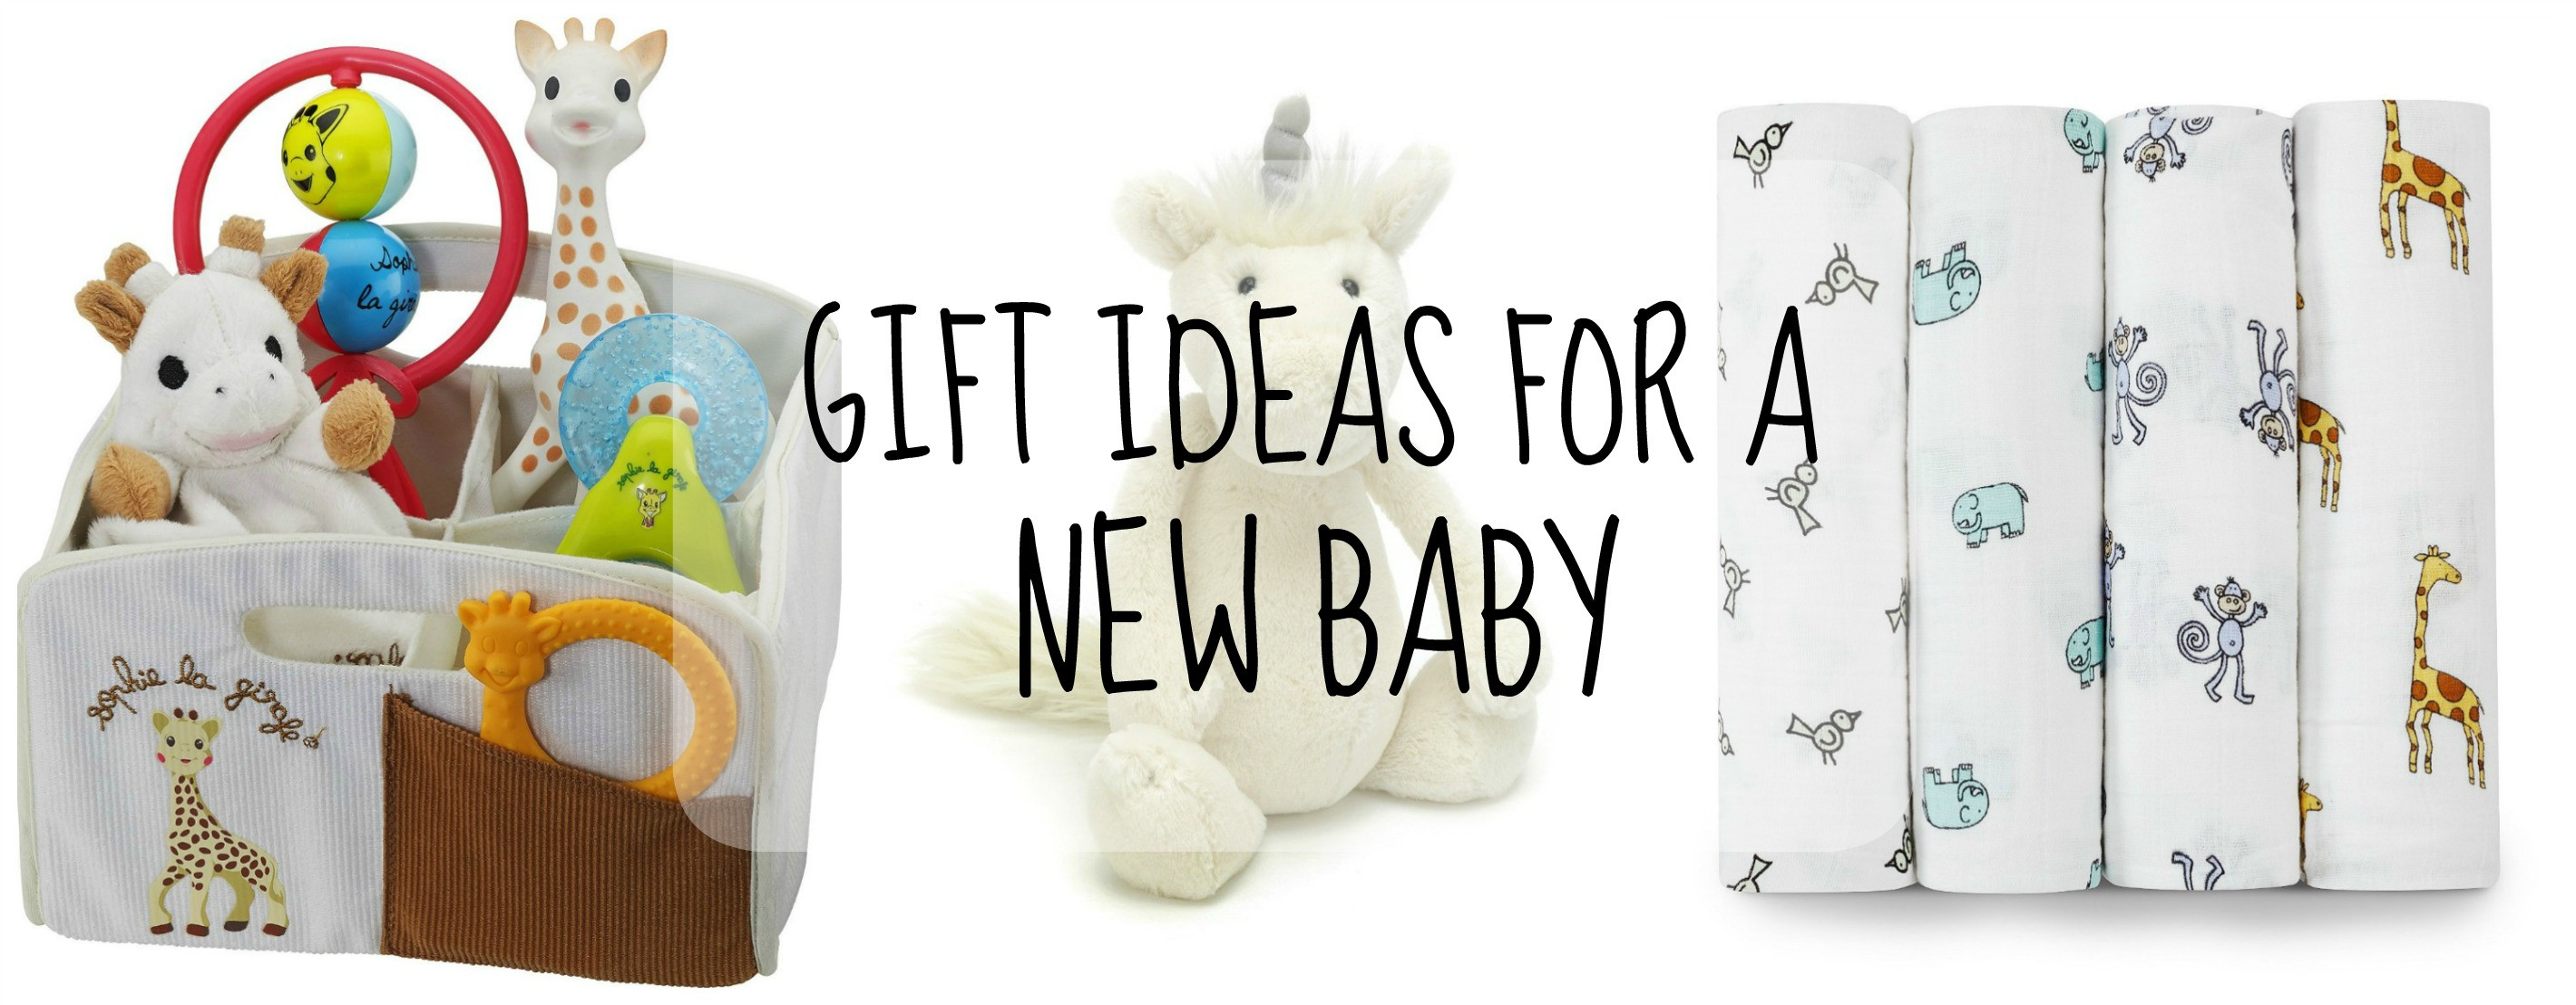 Best ideas about Www Ideas For A Gift For Family For New Baby . Save or Pin Gift Ideas for a New Baby Lamb & Bear Now.